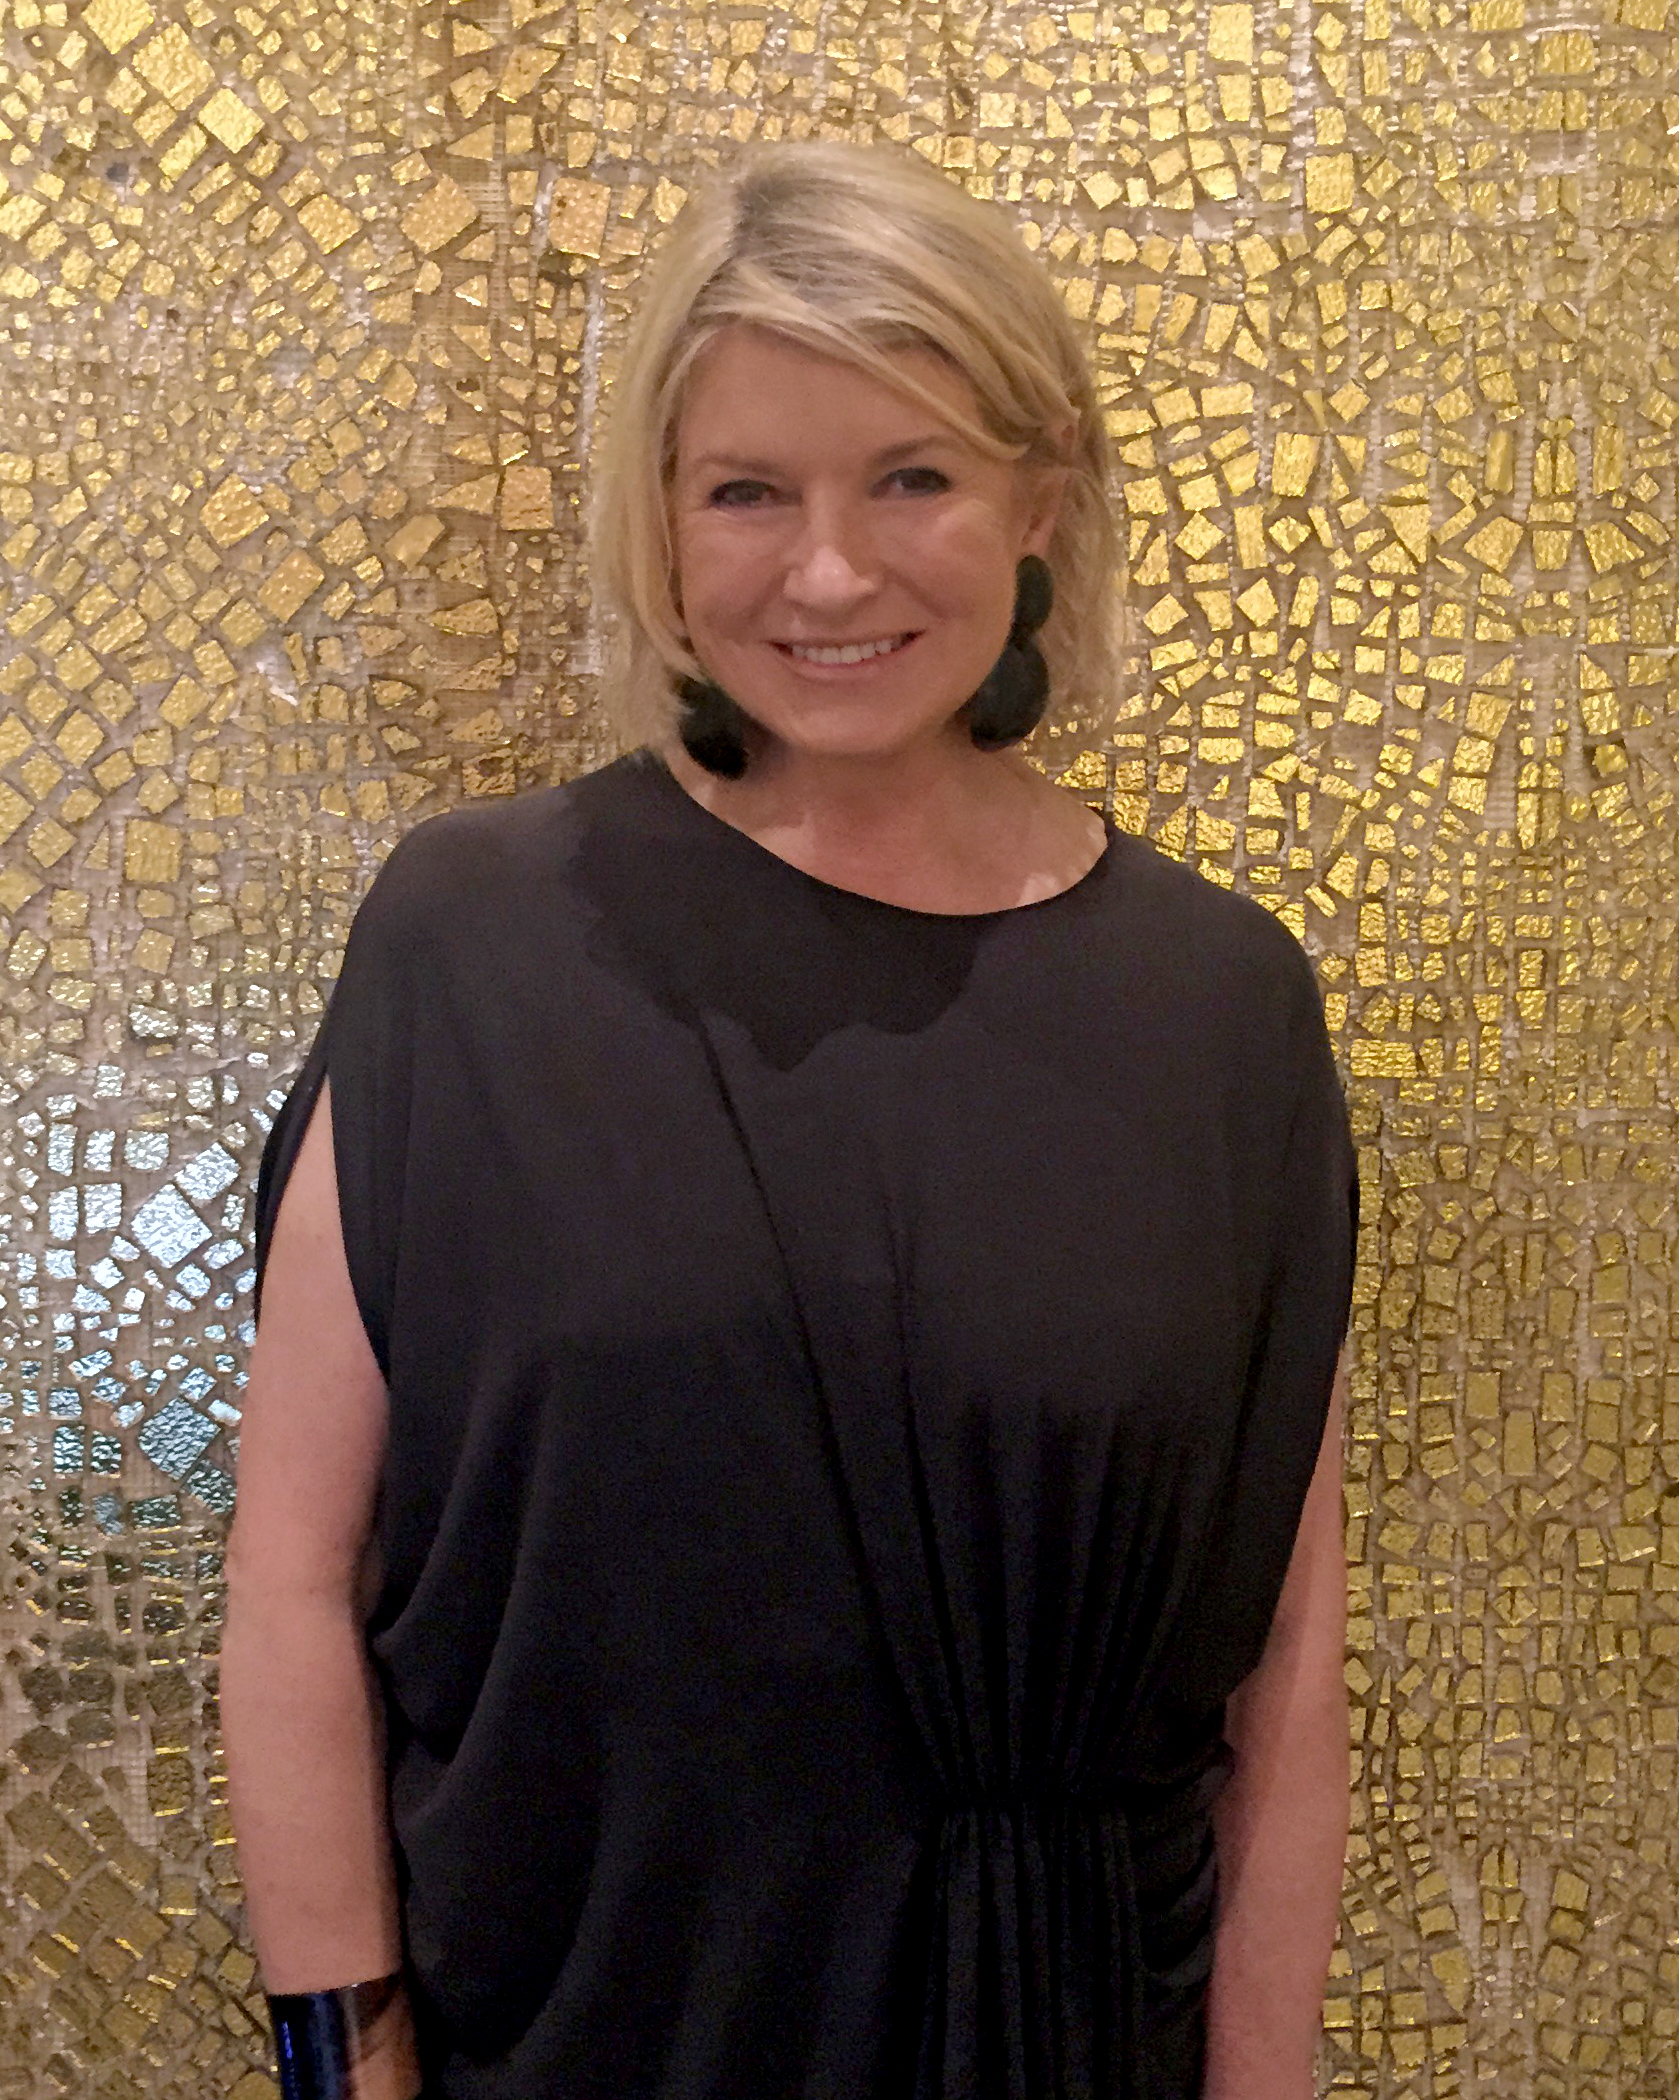 cartagena-bridal-week-martha-stewart-7892-3-0915.jpg